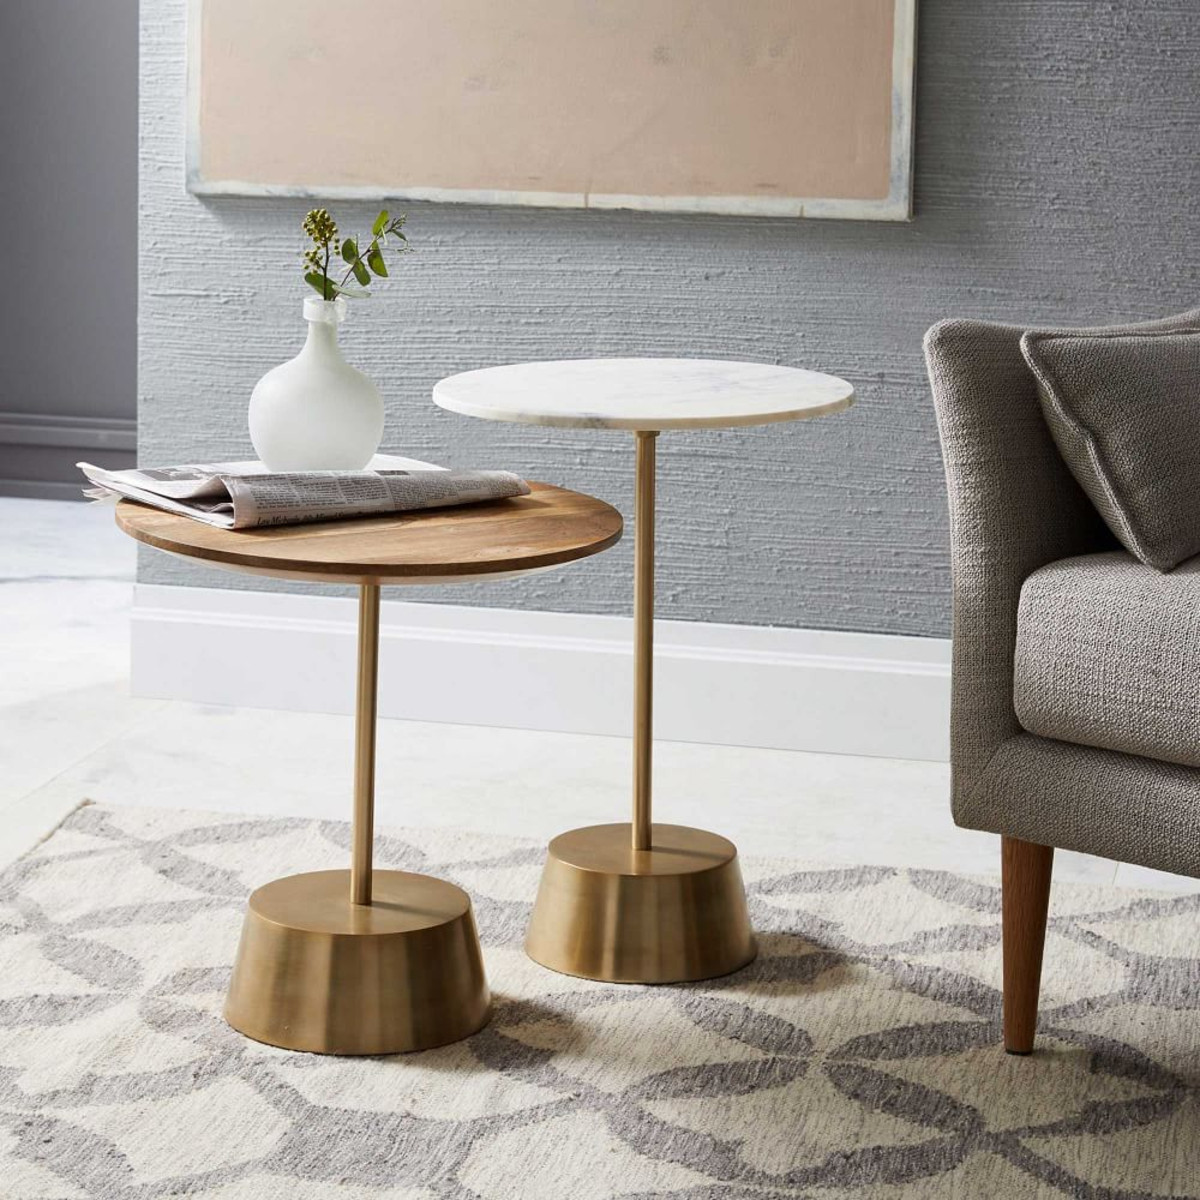 living room lounge side tables furniture small table decorative tall coffee glass and accent full size lamp outdoor serving with wooden legs metal large round linen tablecloths